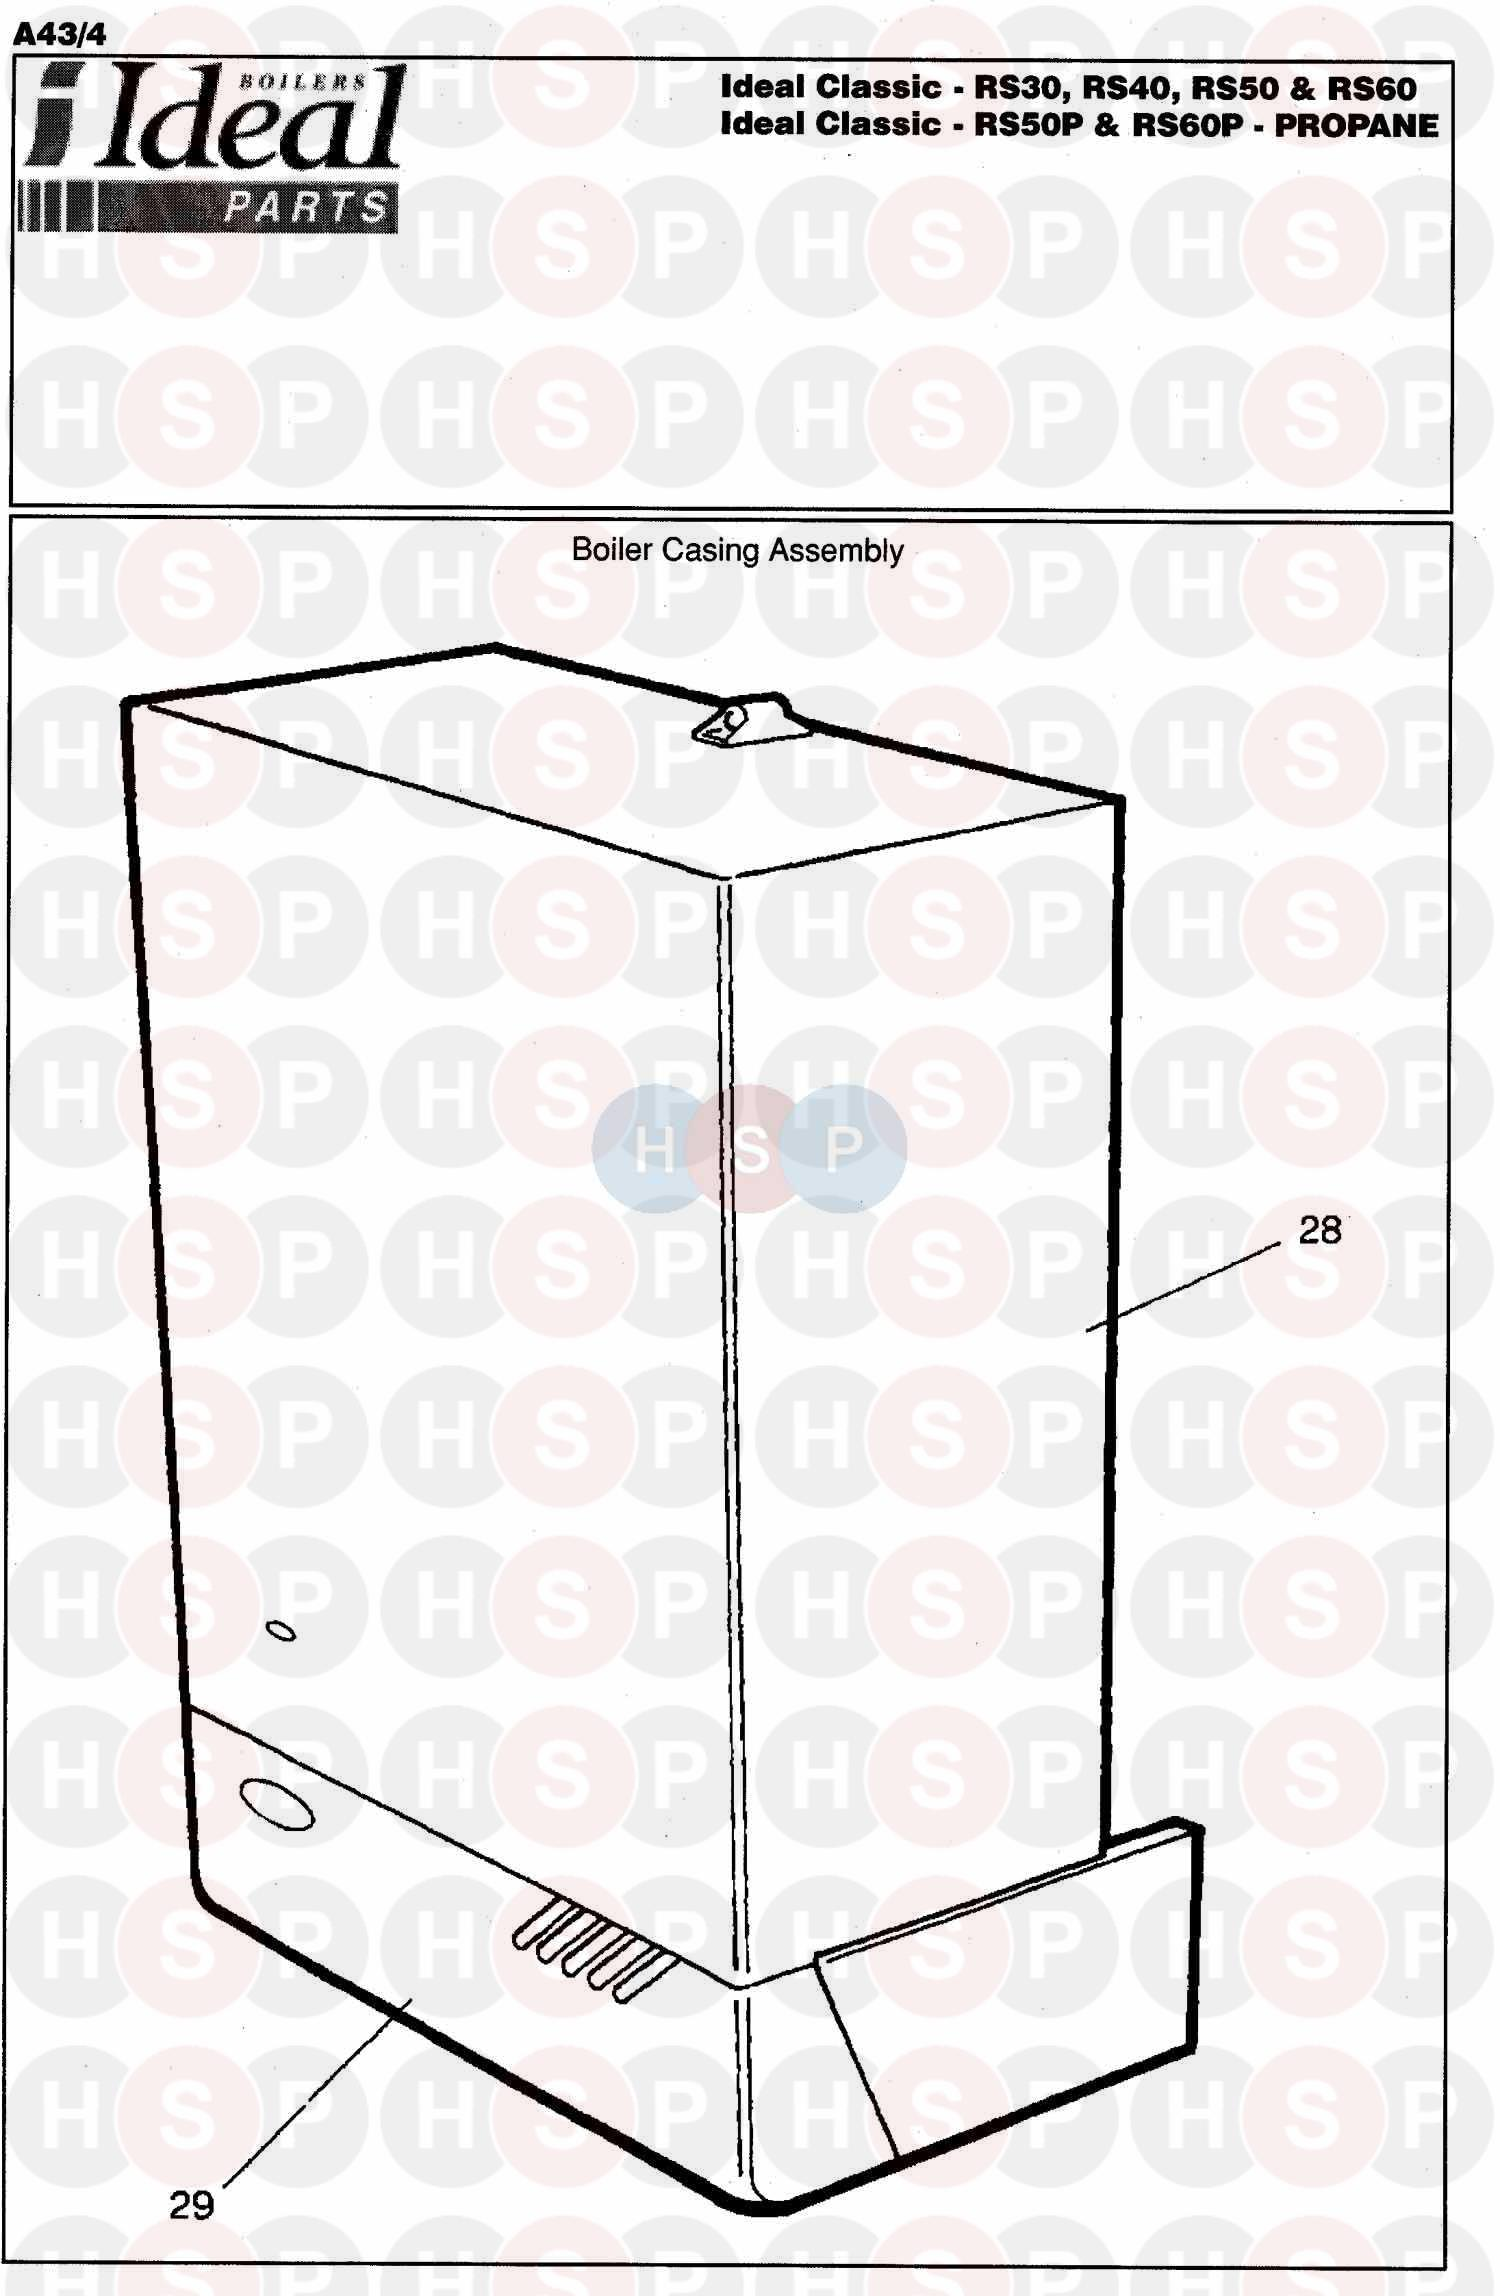 wiring diagram for 4 wire boiler thermostat with Ideal Classic Boiler Wiring Diagram on Gas Furnace Wiring Diagram 2wire also Wiring Up Thermostat further Honeywell Fan Control Wiring Diagrams in addition 10527 besides Dgaa056bdtb Coleman Gas Furnace Parts.